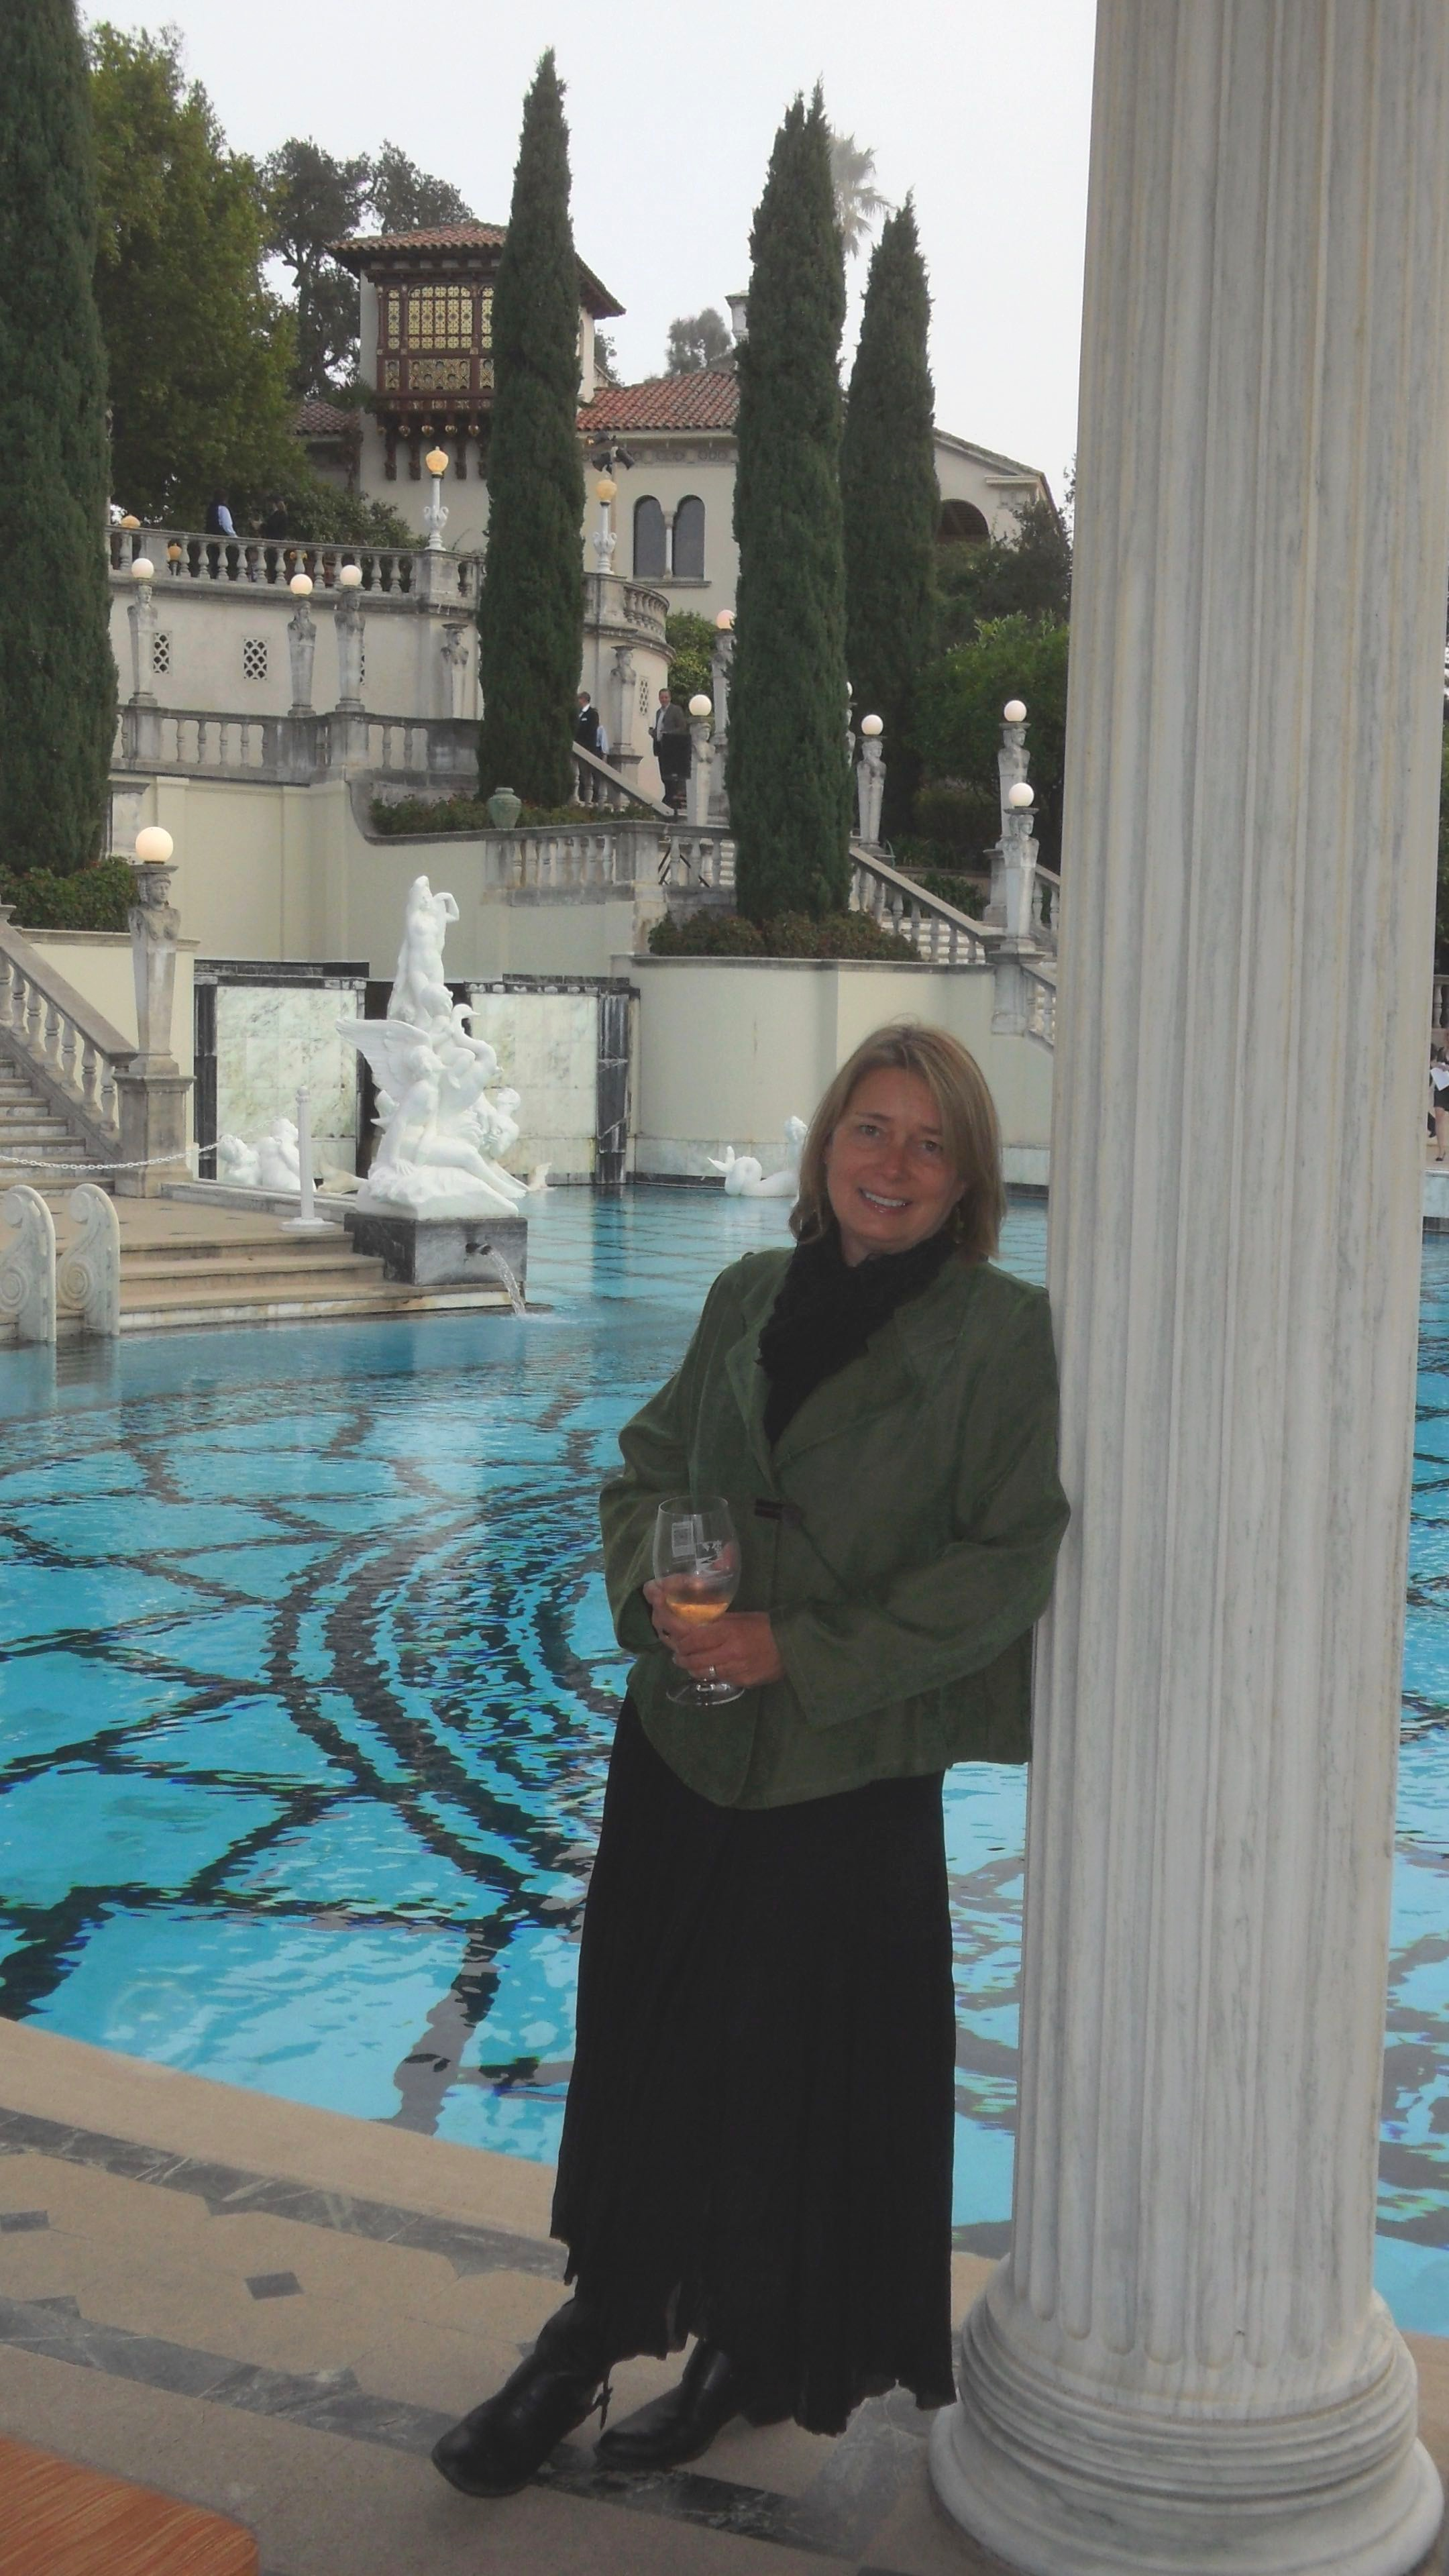 Dale+Hearst+Castle+full.jpg